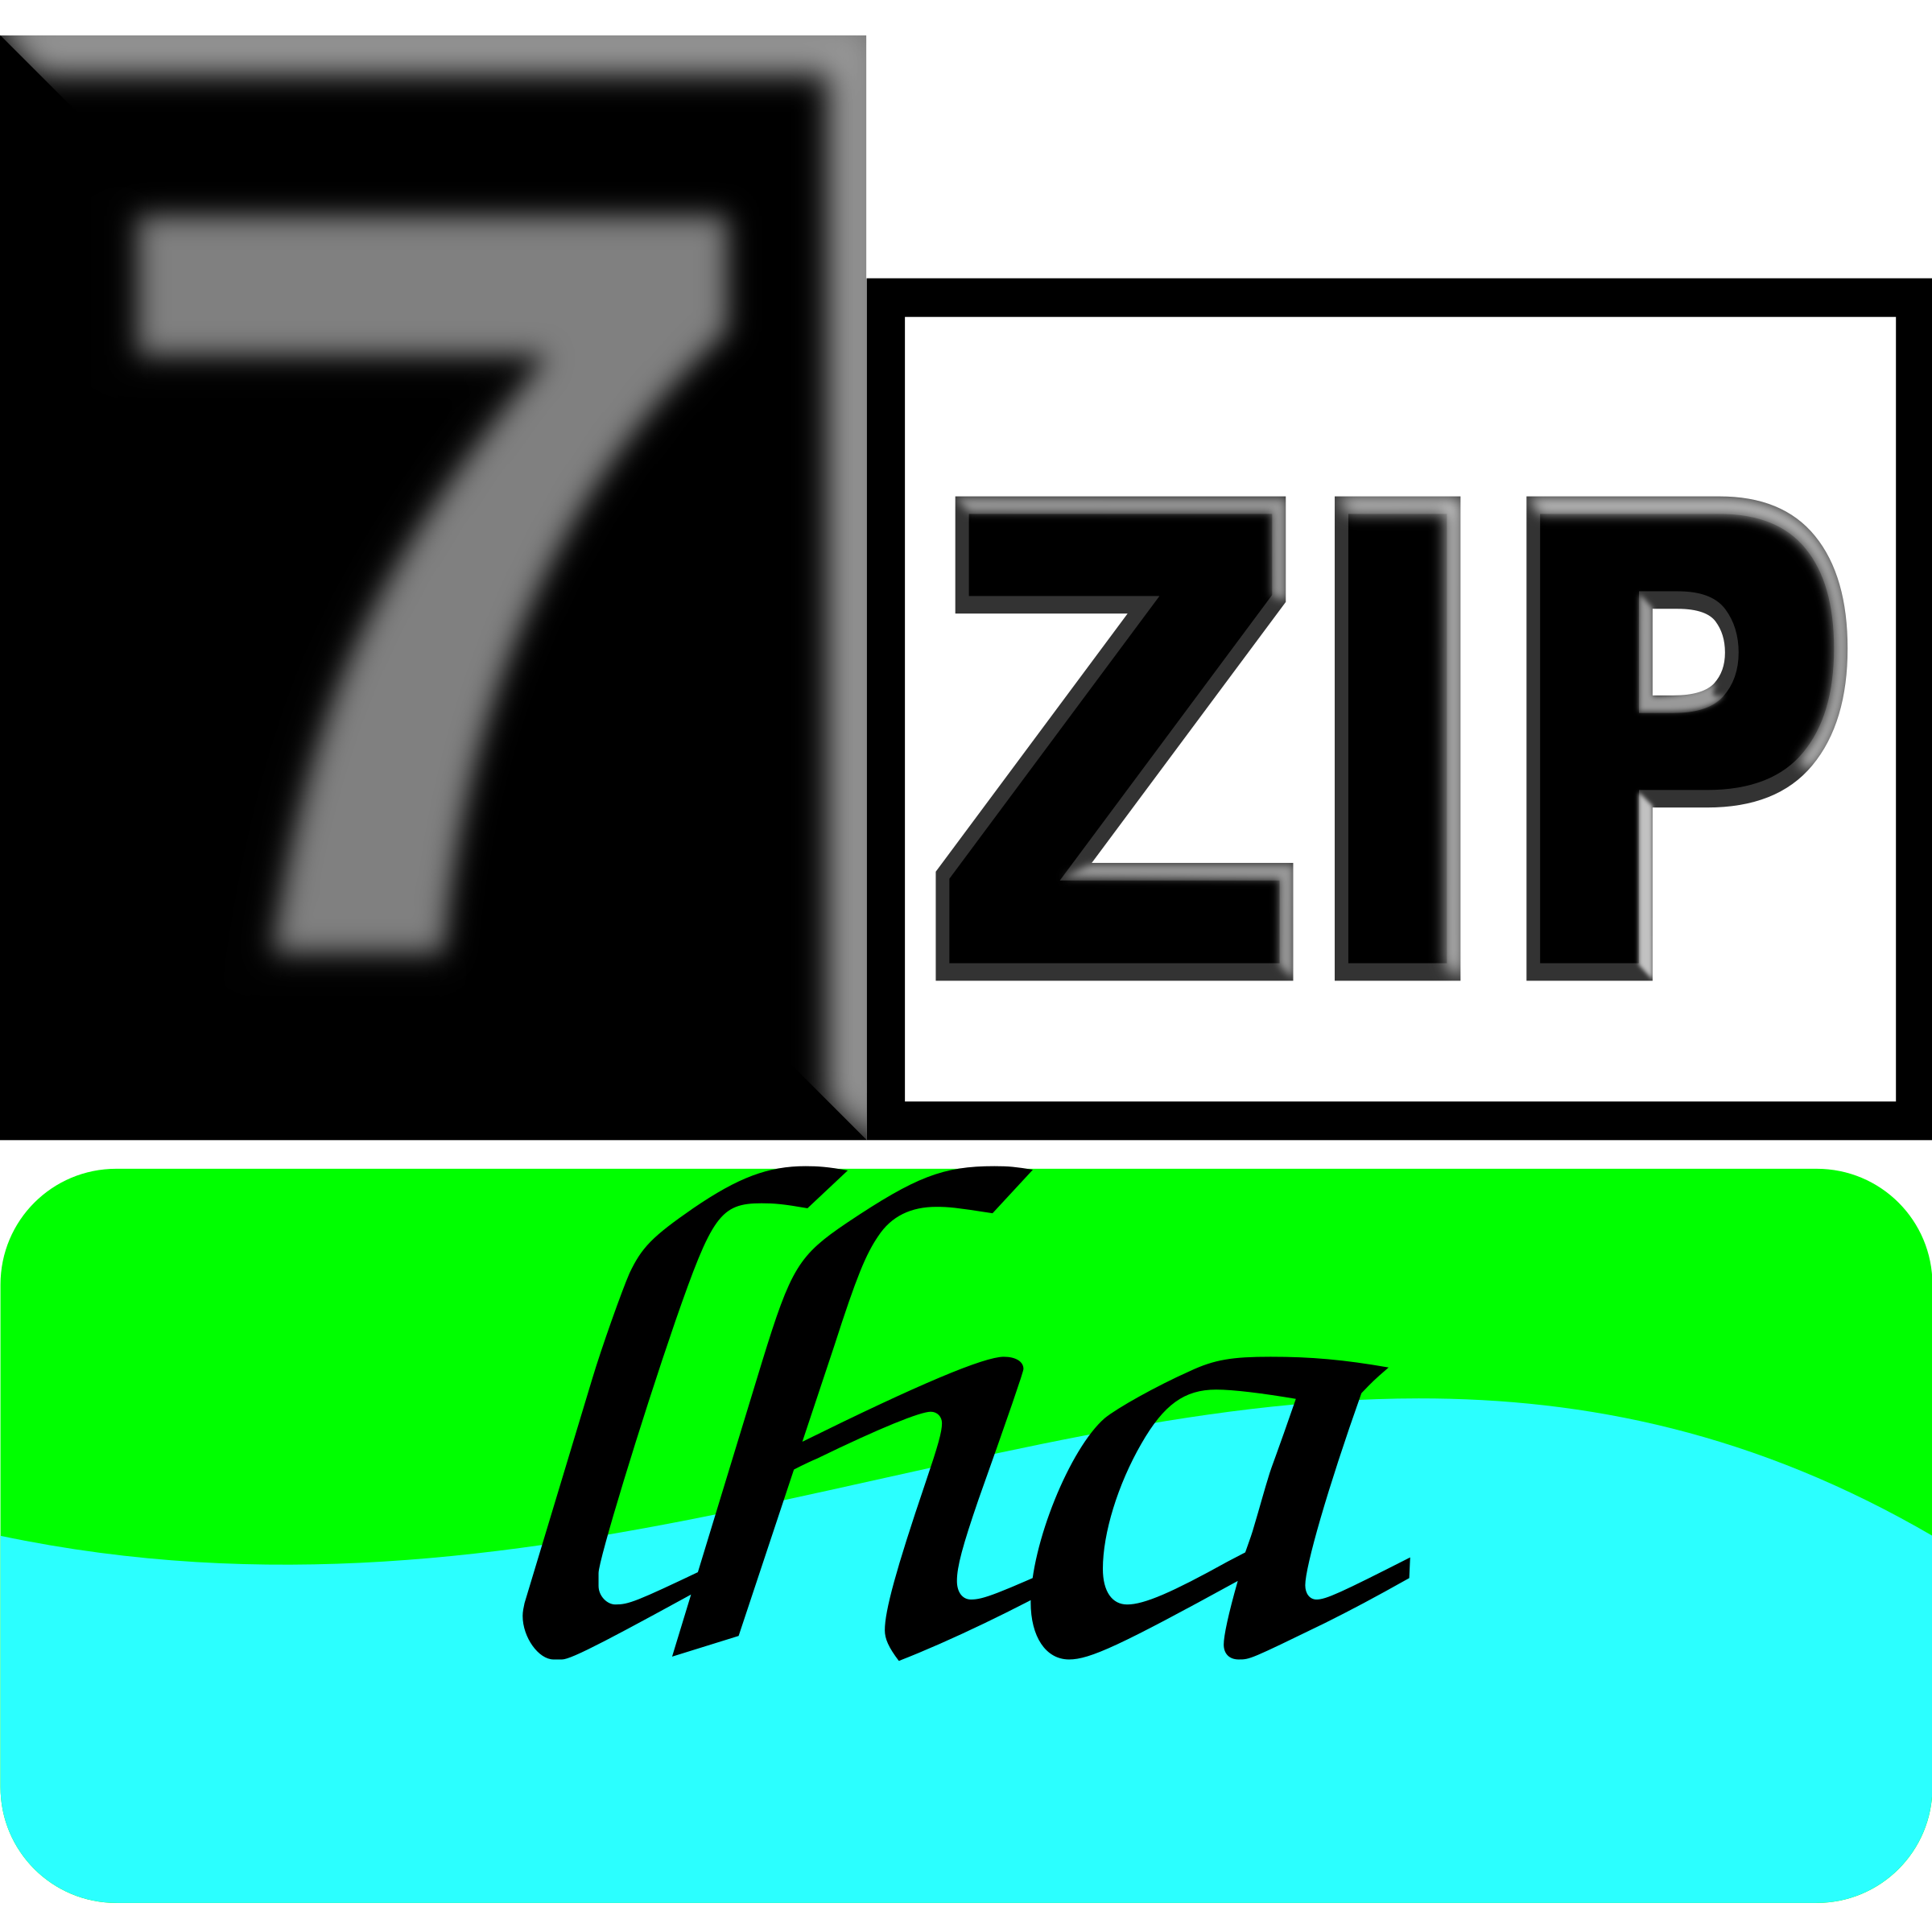 7zipClassic-lha by kg